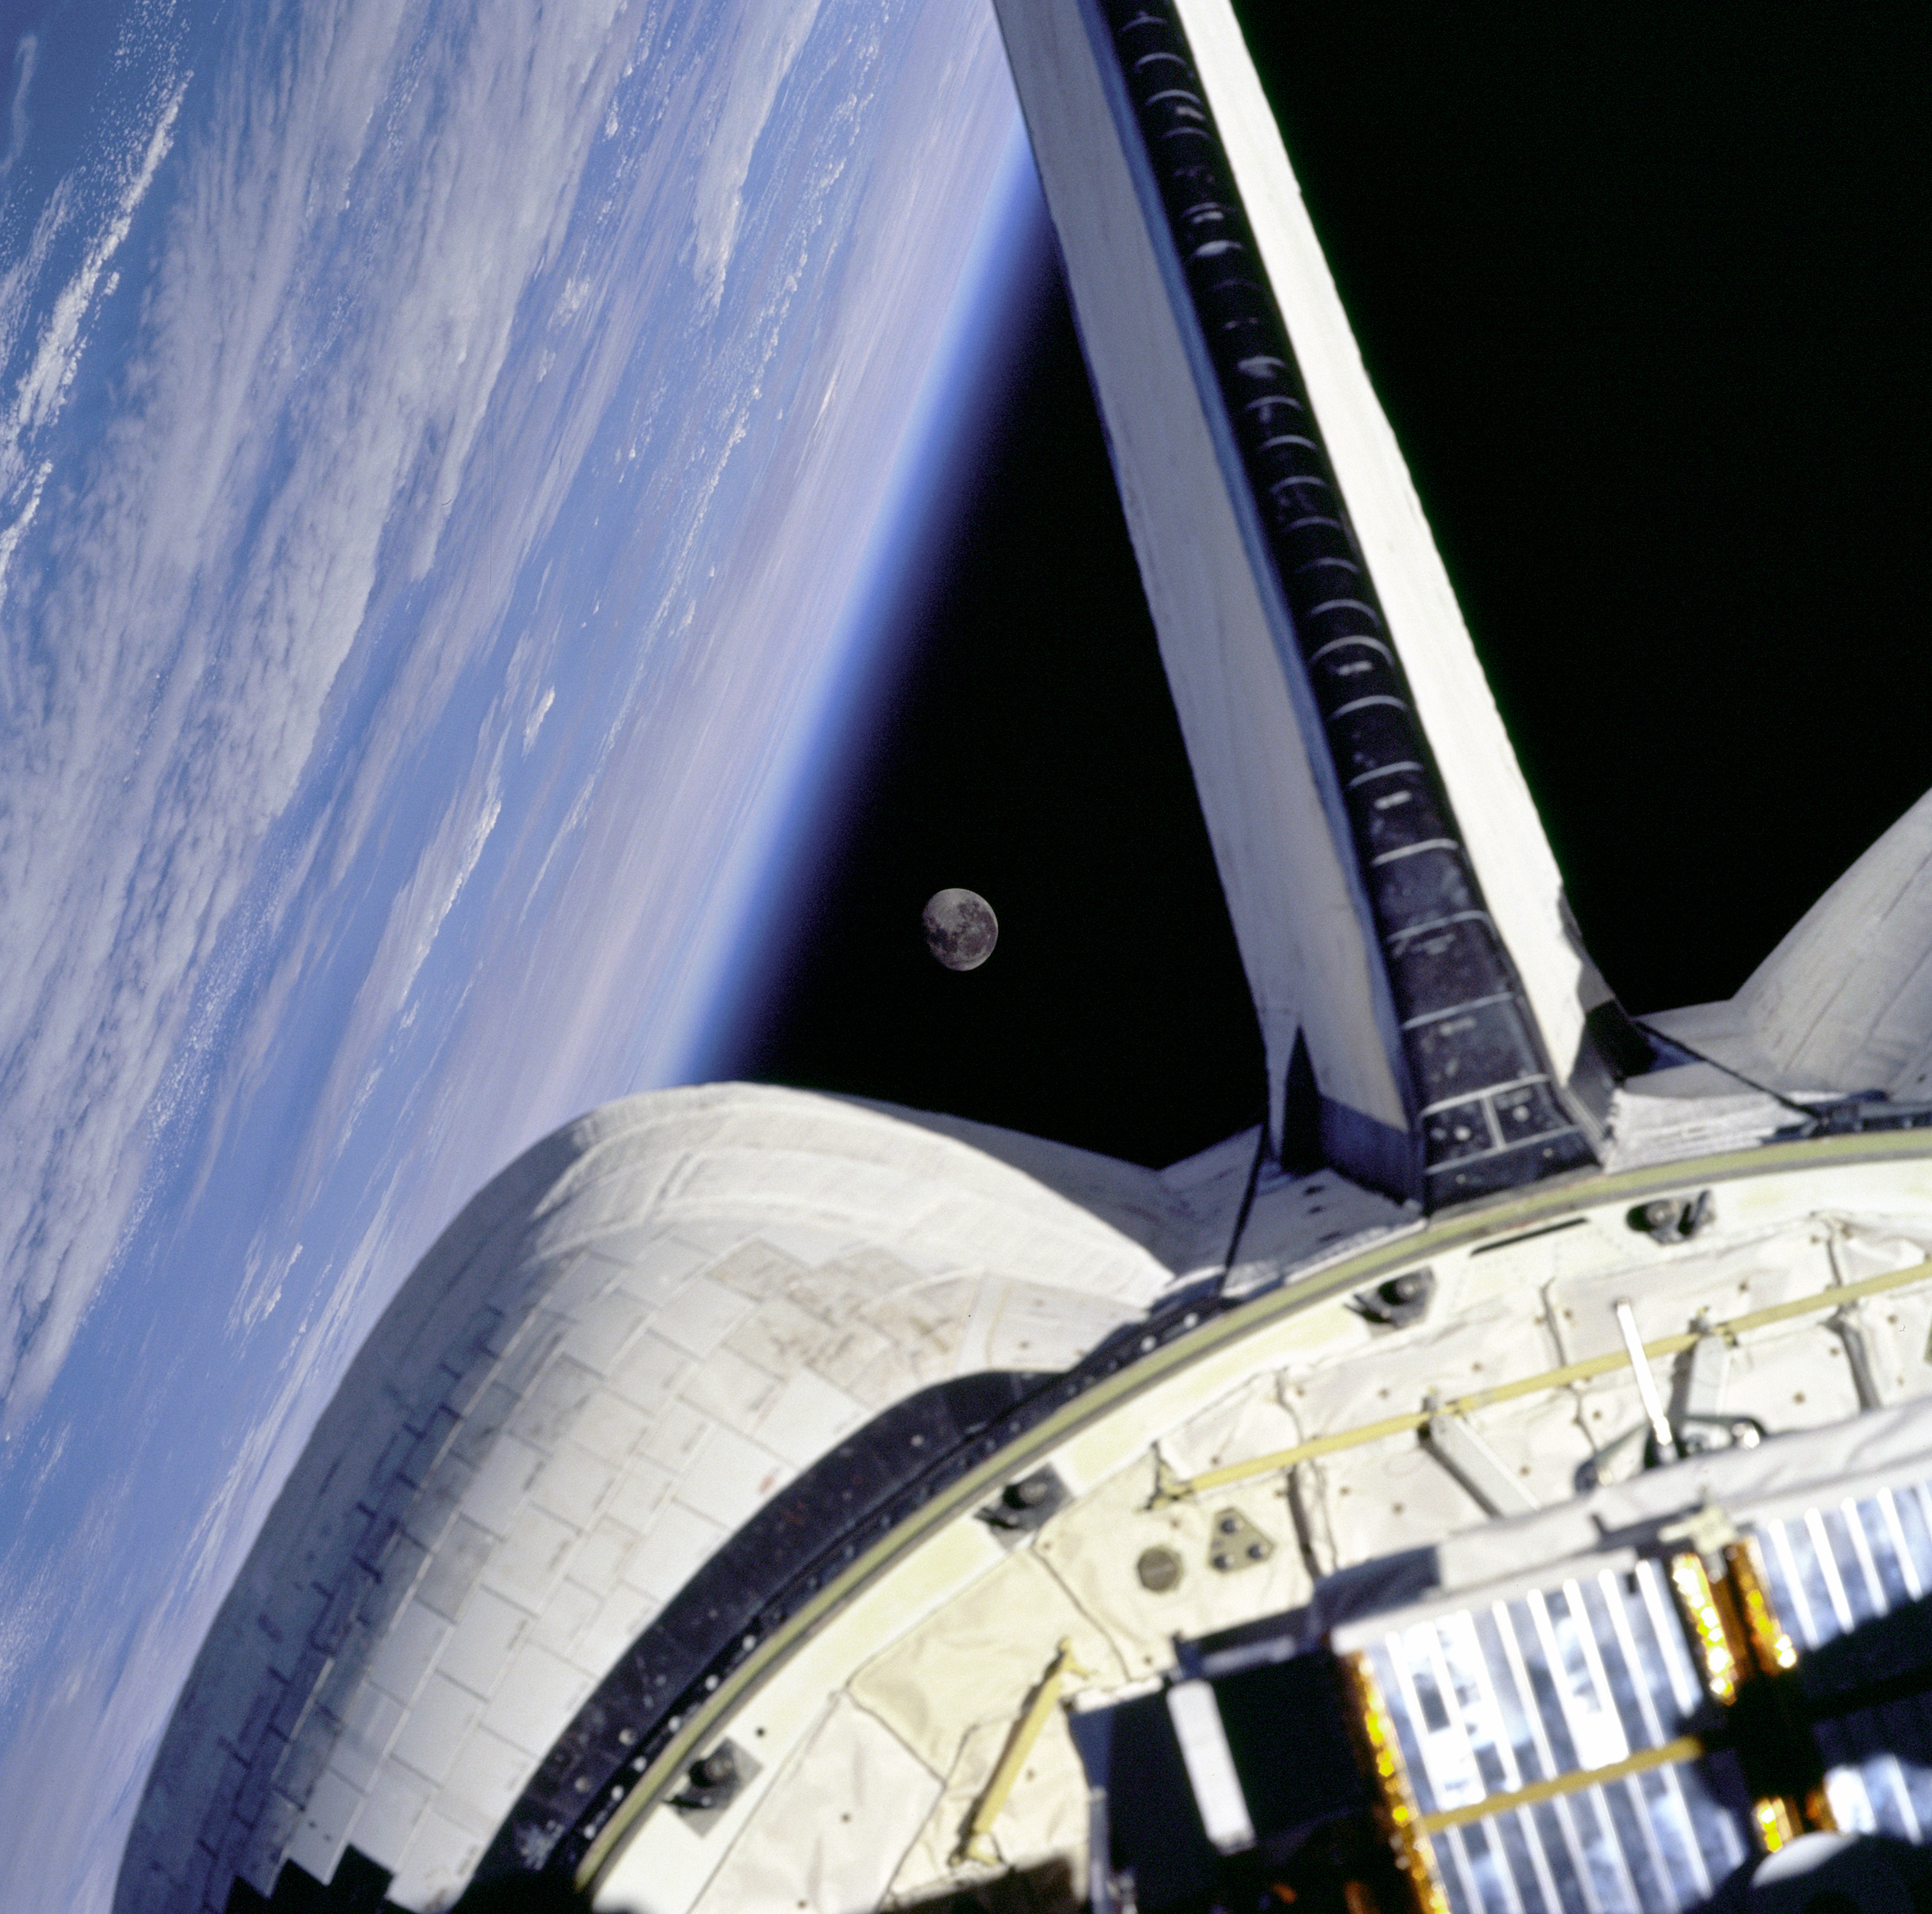 Earth and its Moon are nicely framed in this image taken from the aft windows of the Space Shuttle Discovery in 1998.